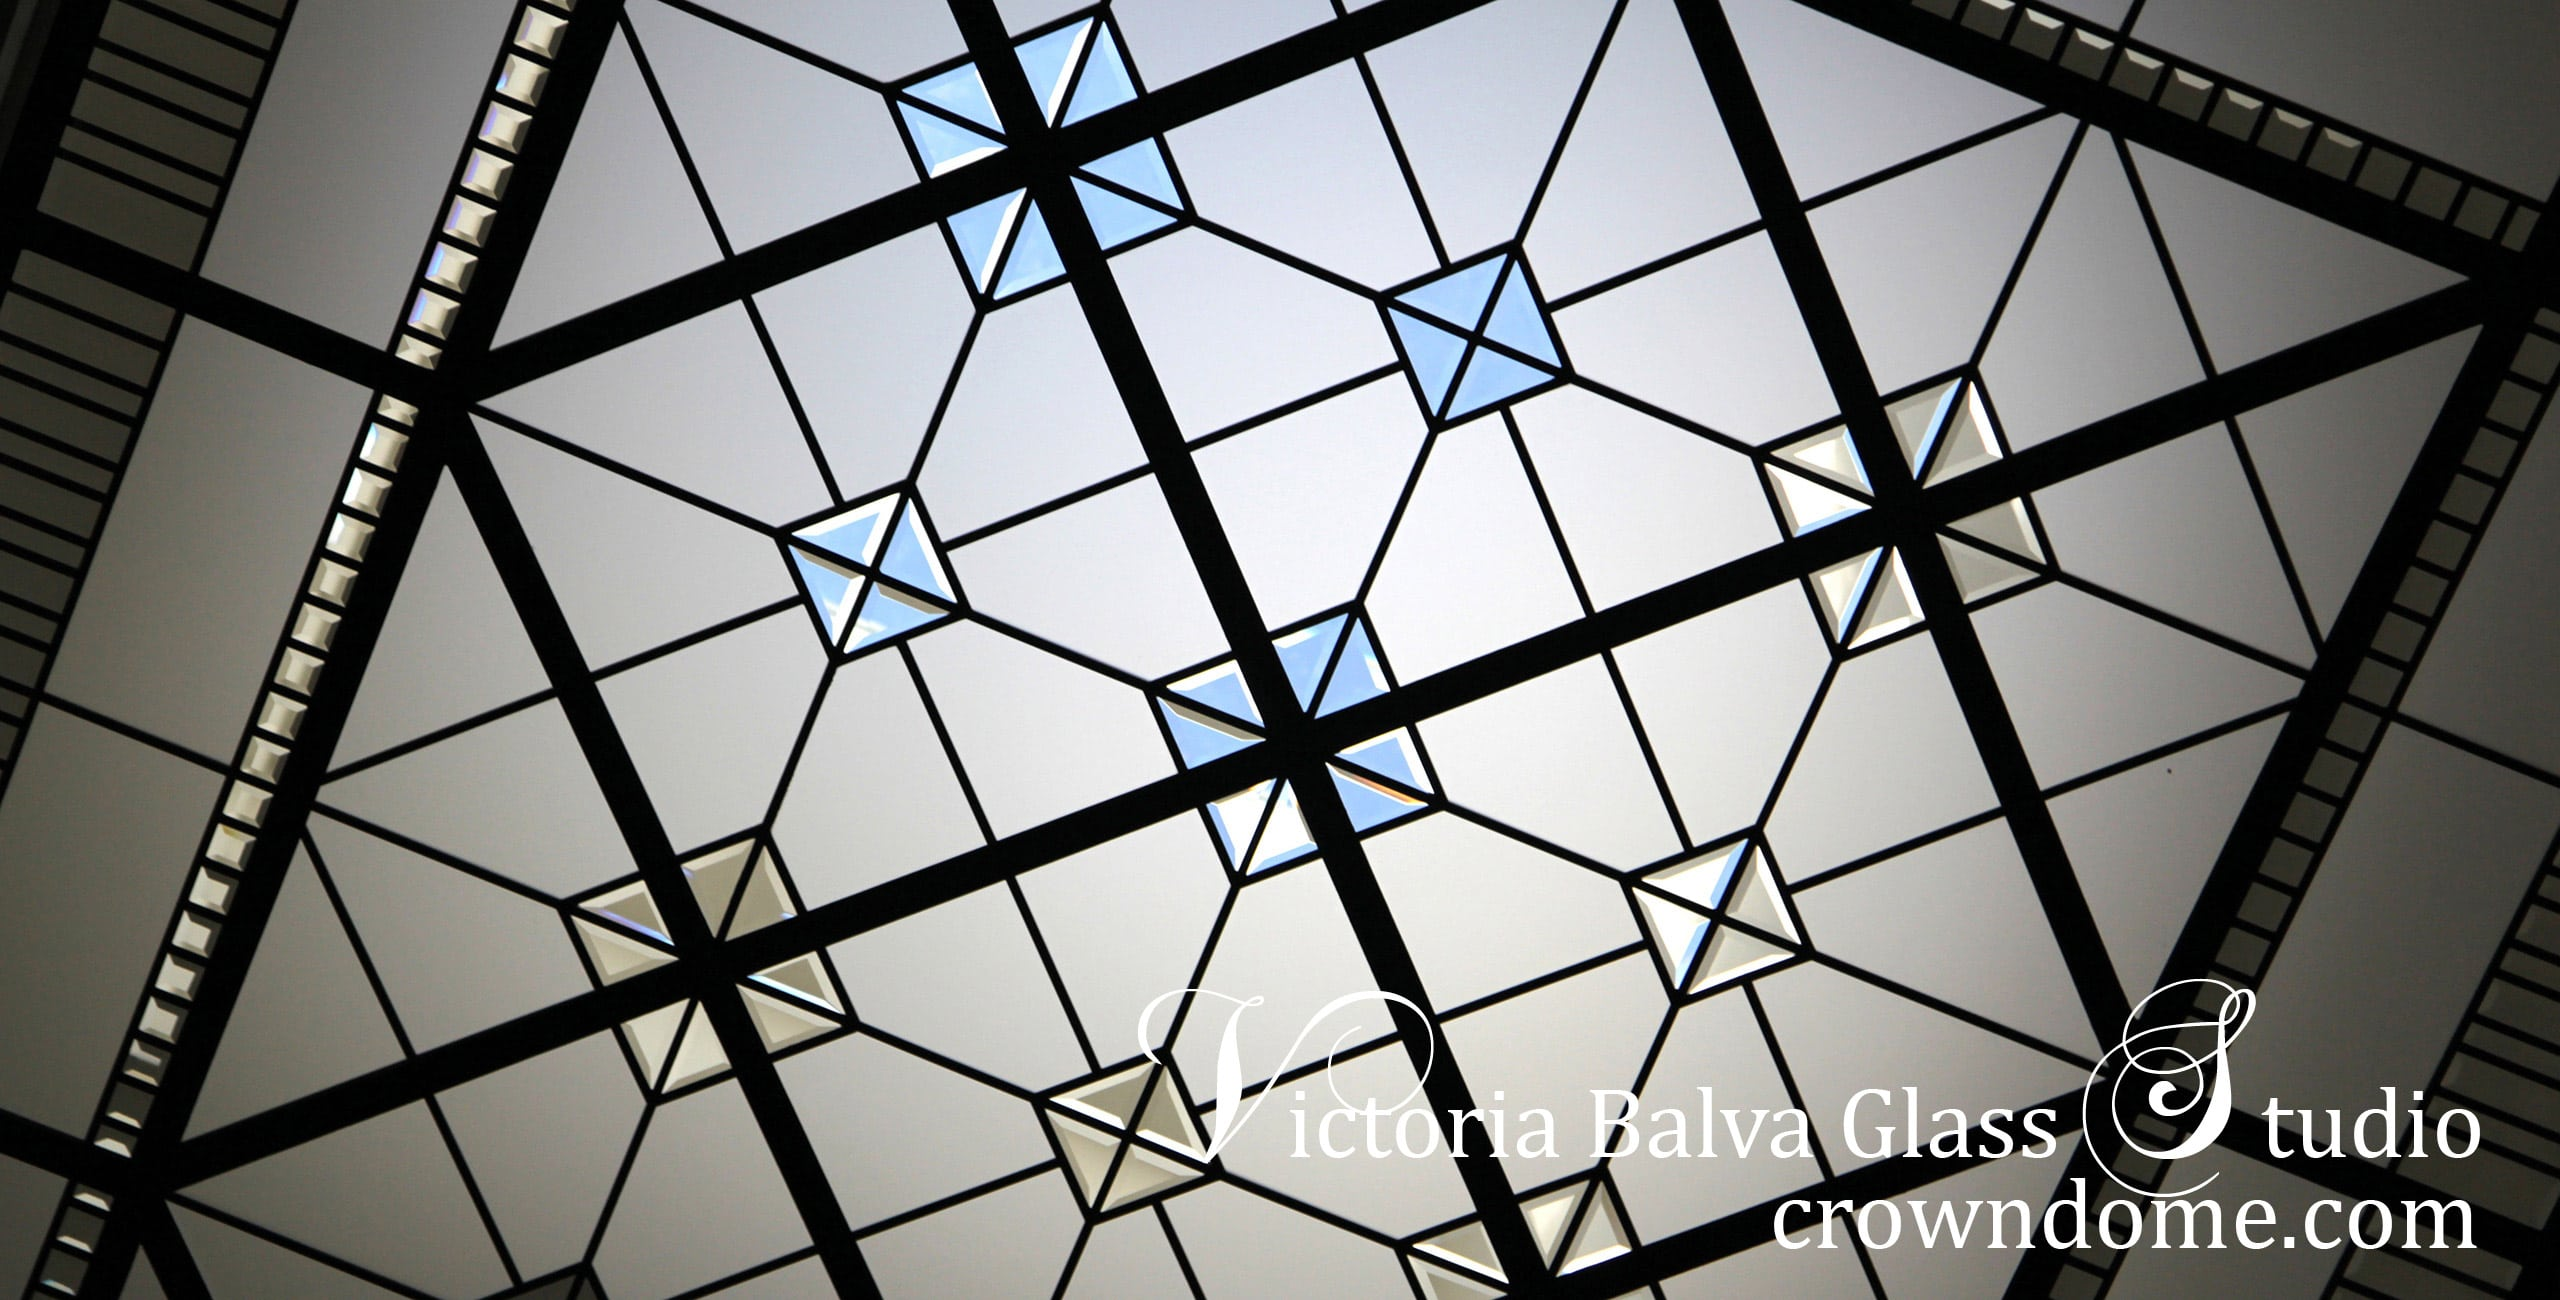 Leaded glass skylight ceiling close-up detail with clear beveled glass and clear textured glass for a custom-built house in traditional style. Clear textured glass, beveled glass, intricate line-work geometry. Leaded glass skylight ceiling design by architectural glass artist Victoria Balva